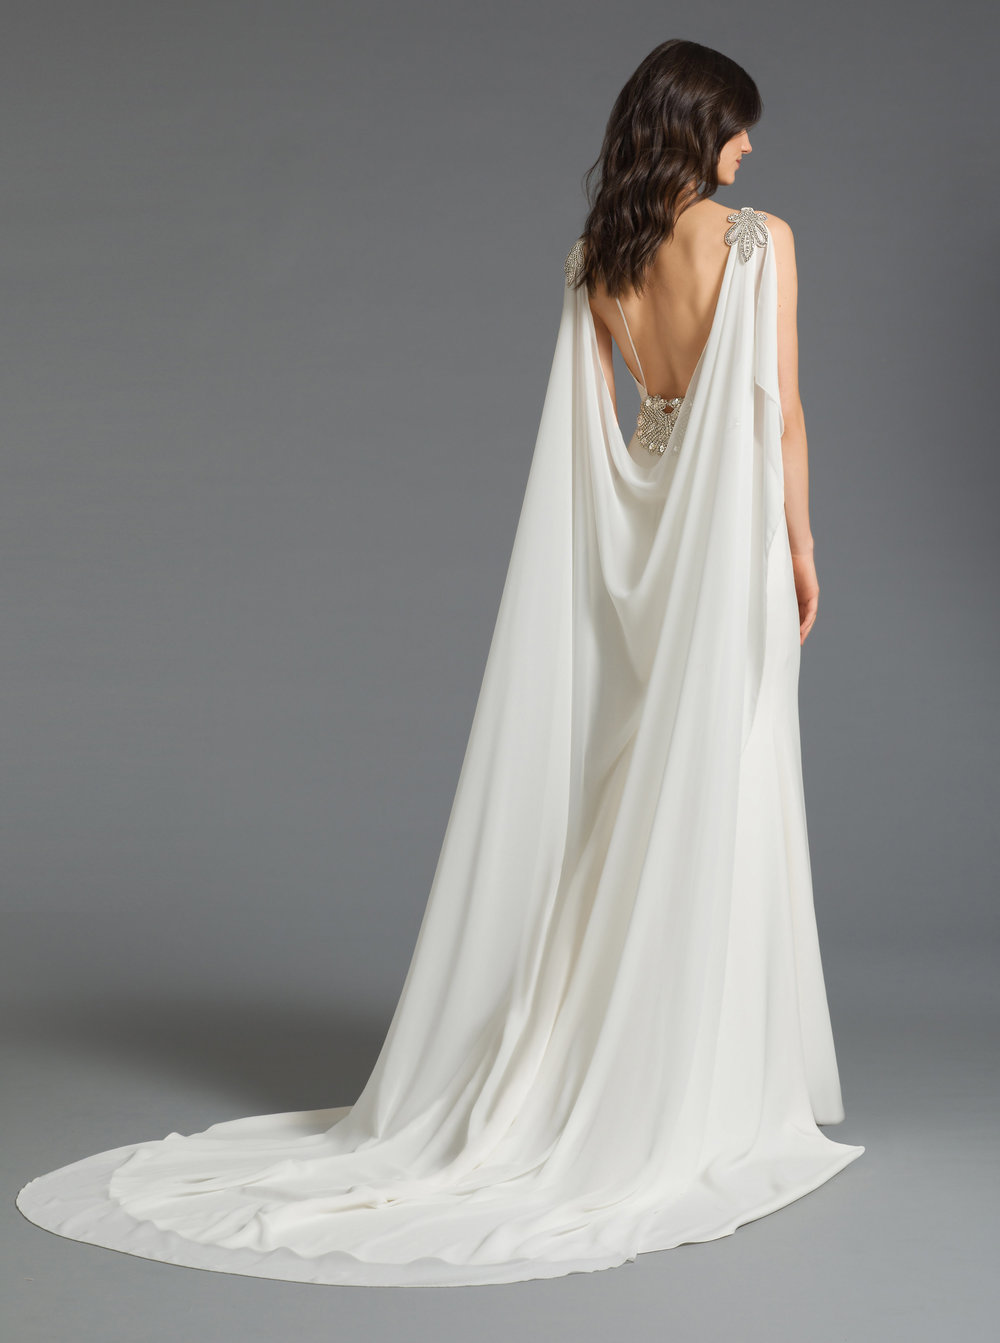 Available at Bride To Be Couture - Inventory # 02787